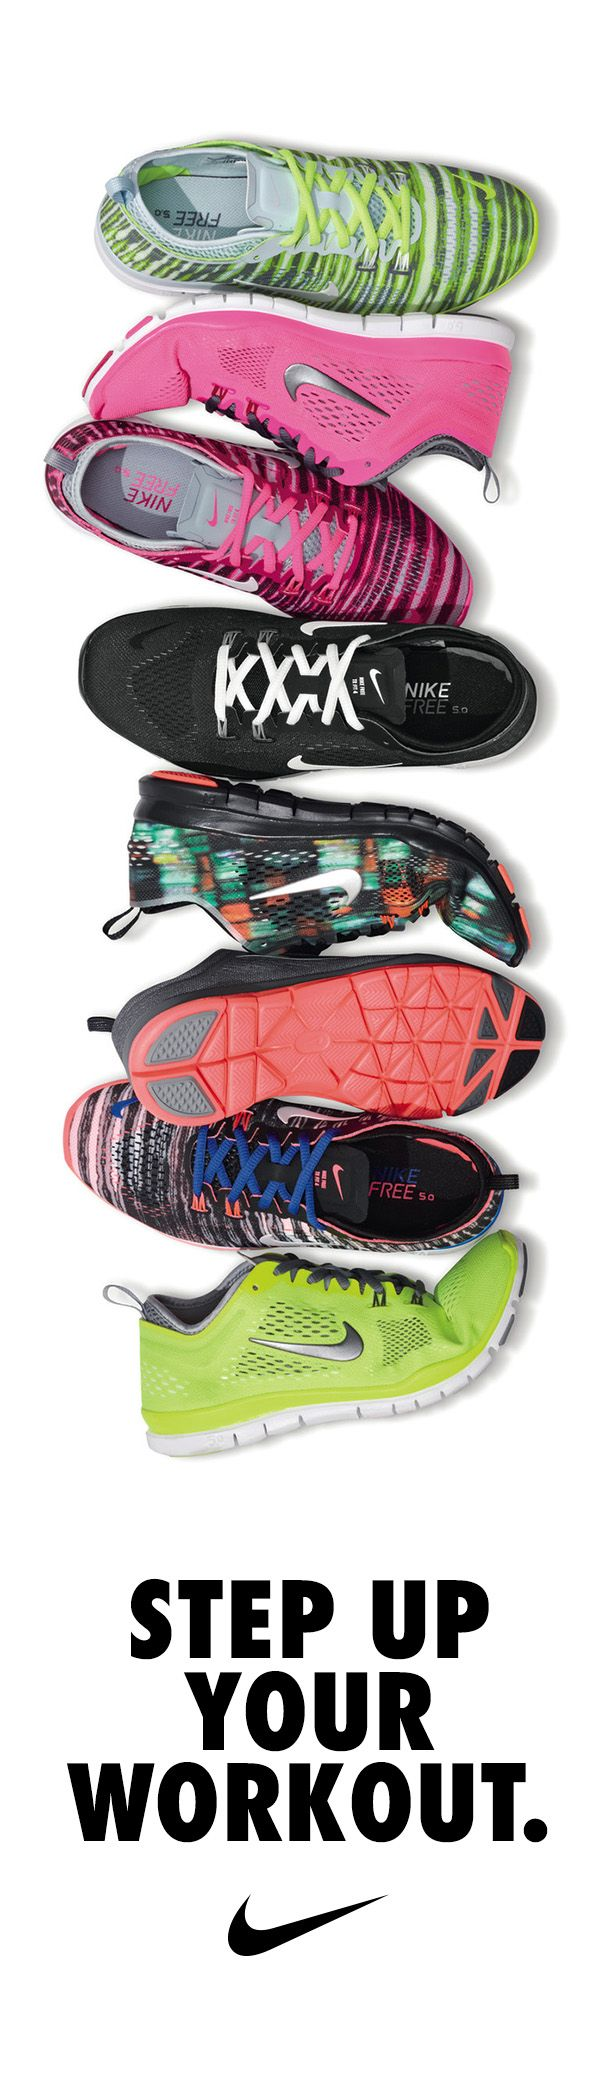 Step up your workout in the Nike Free TR 4 training shoe. Vibrant patterns and bold colors to keep you motivated through your toughest training.